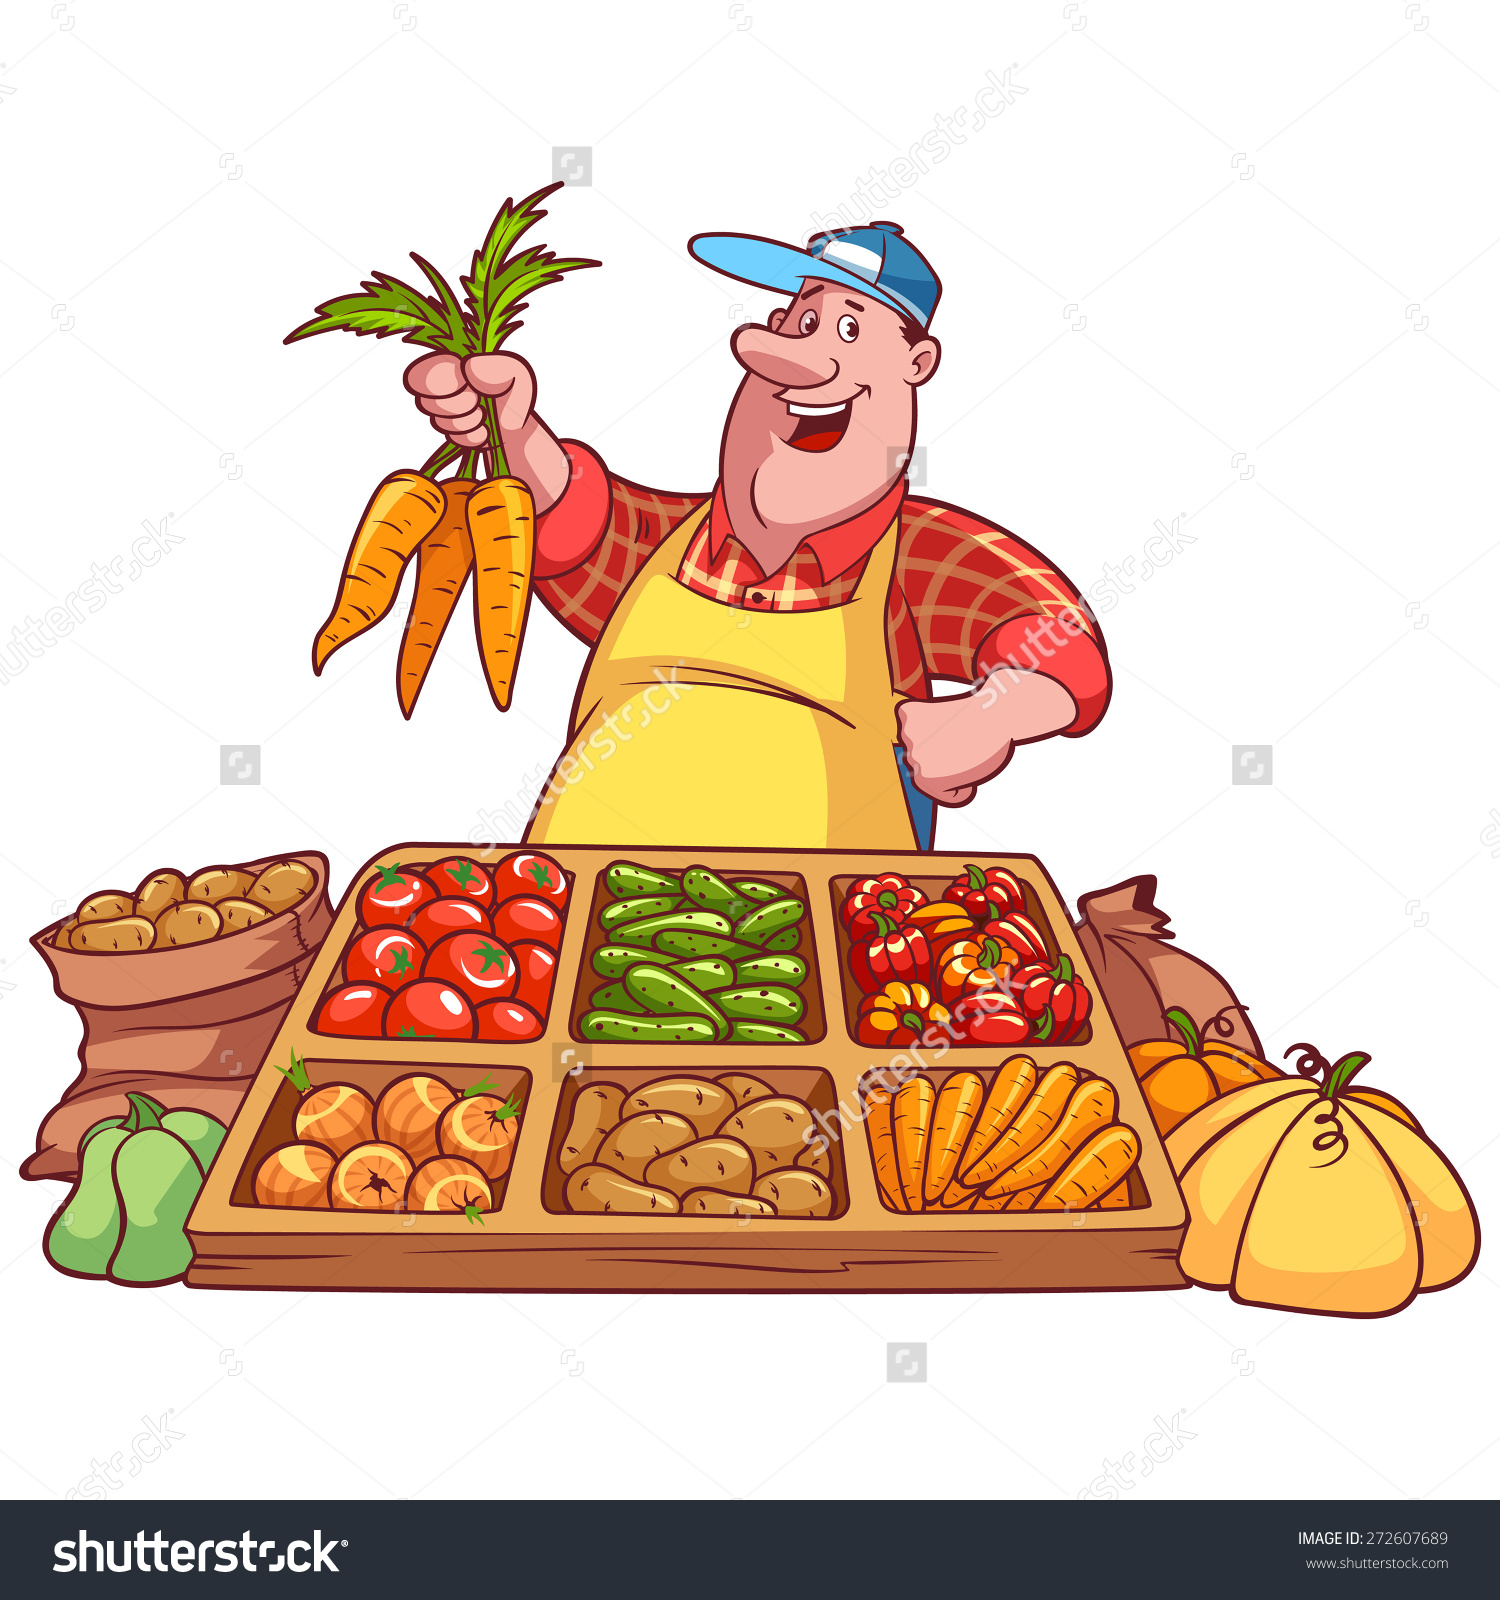 Vegetable Seller Clipart.